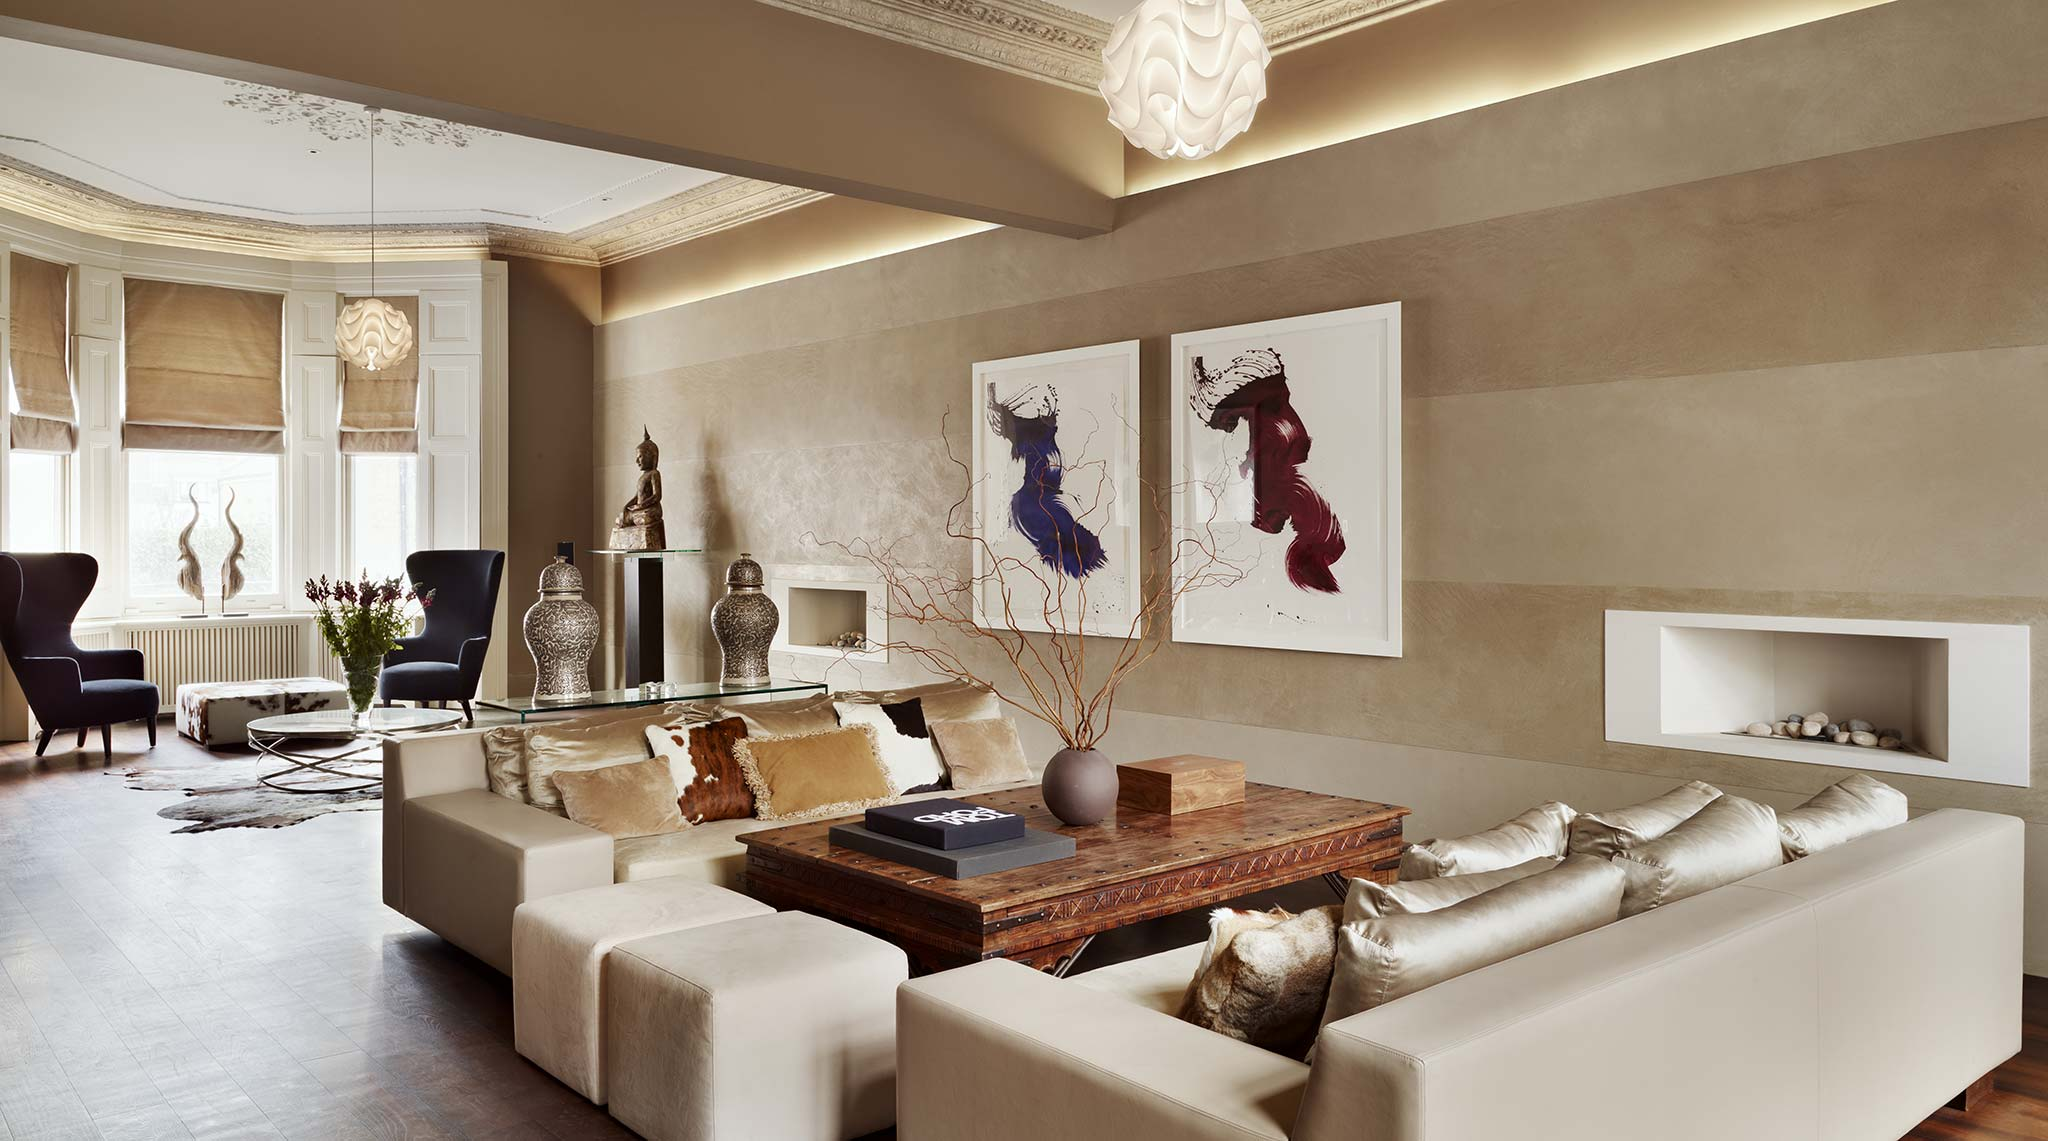 Callender howorth luxury interior designer in london Design interior